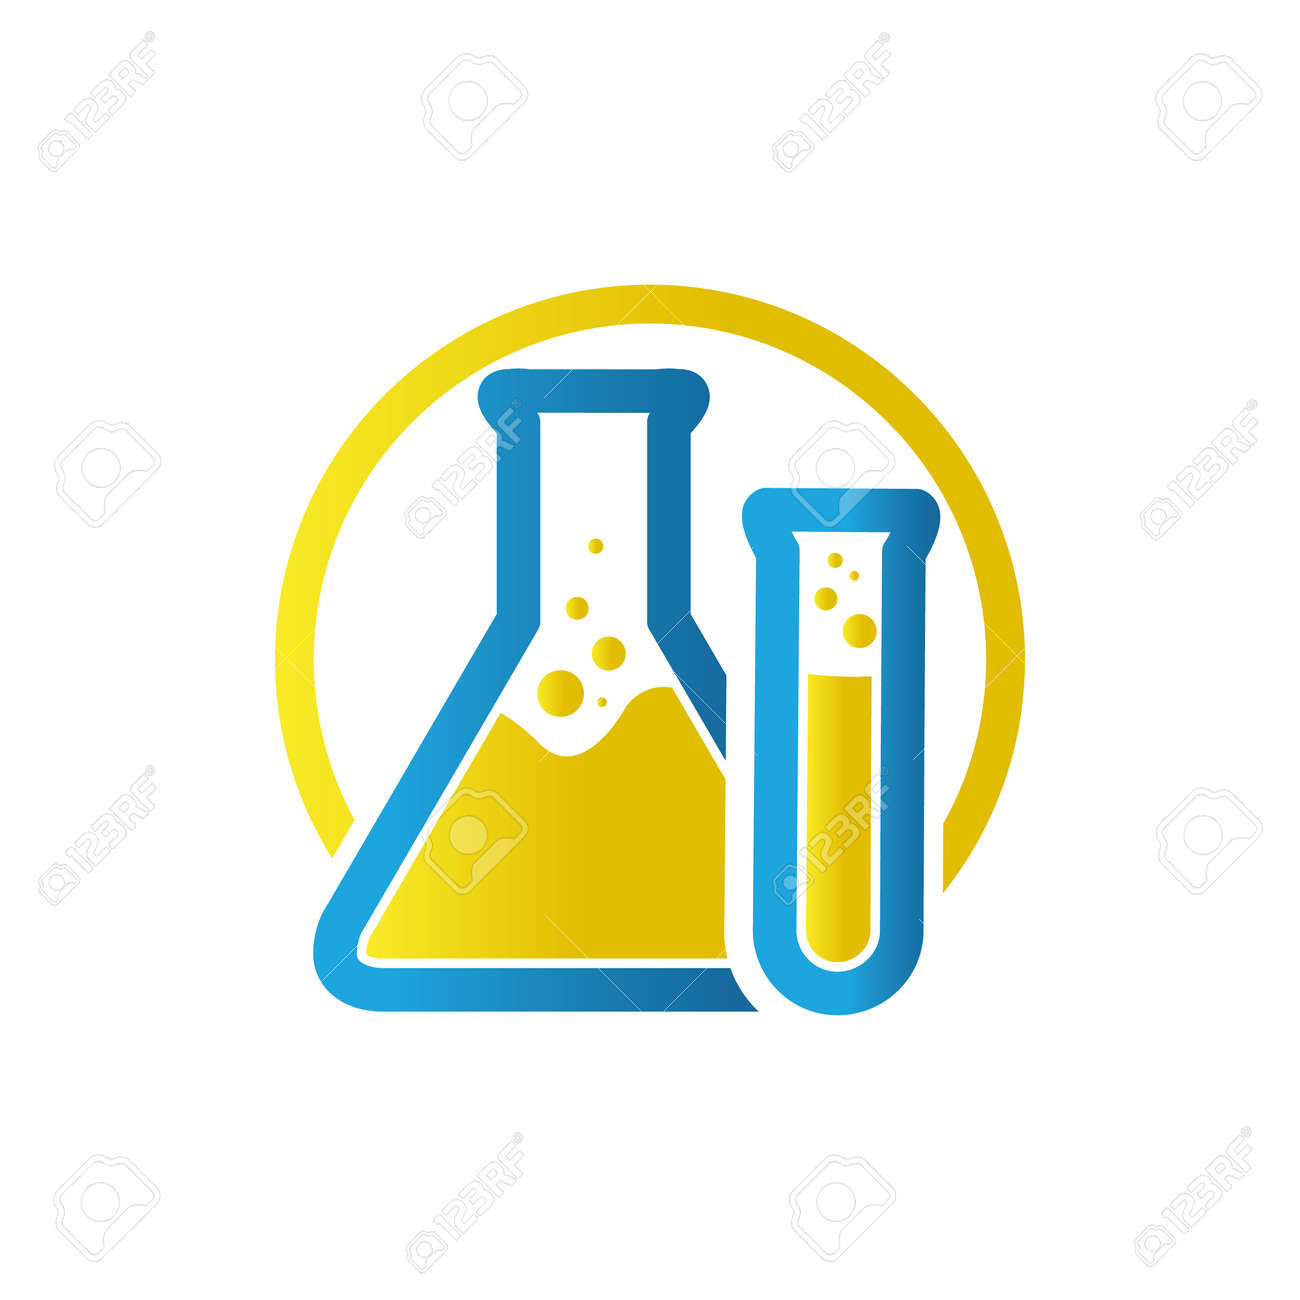 blue yellow flask sign Lab template vector design research science technology symbol - 157158301